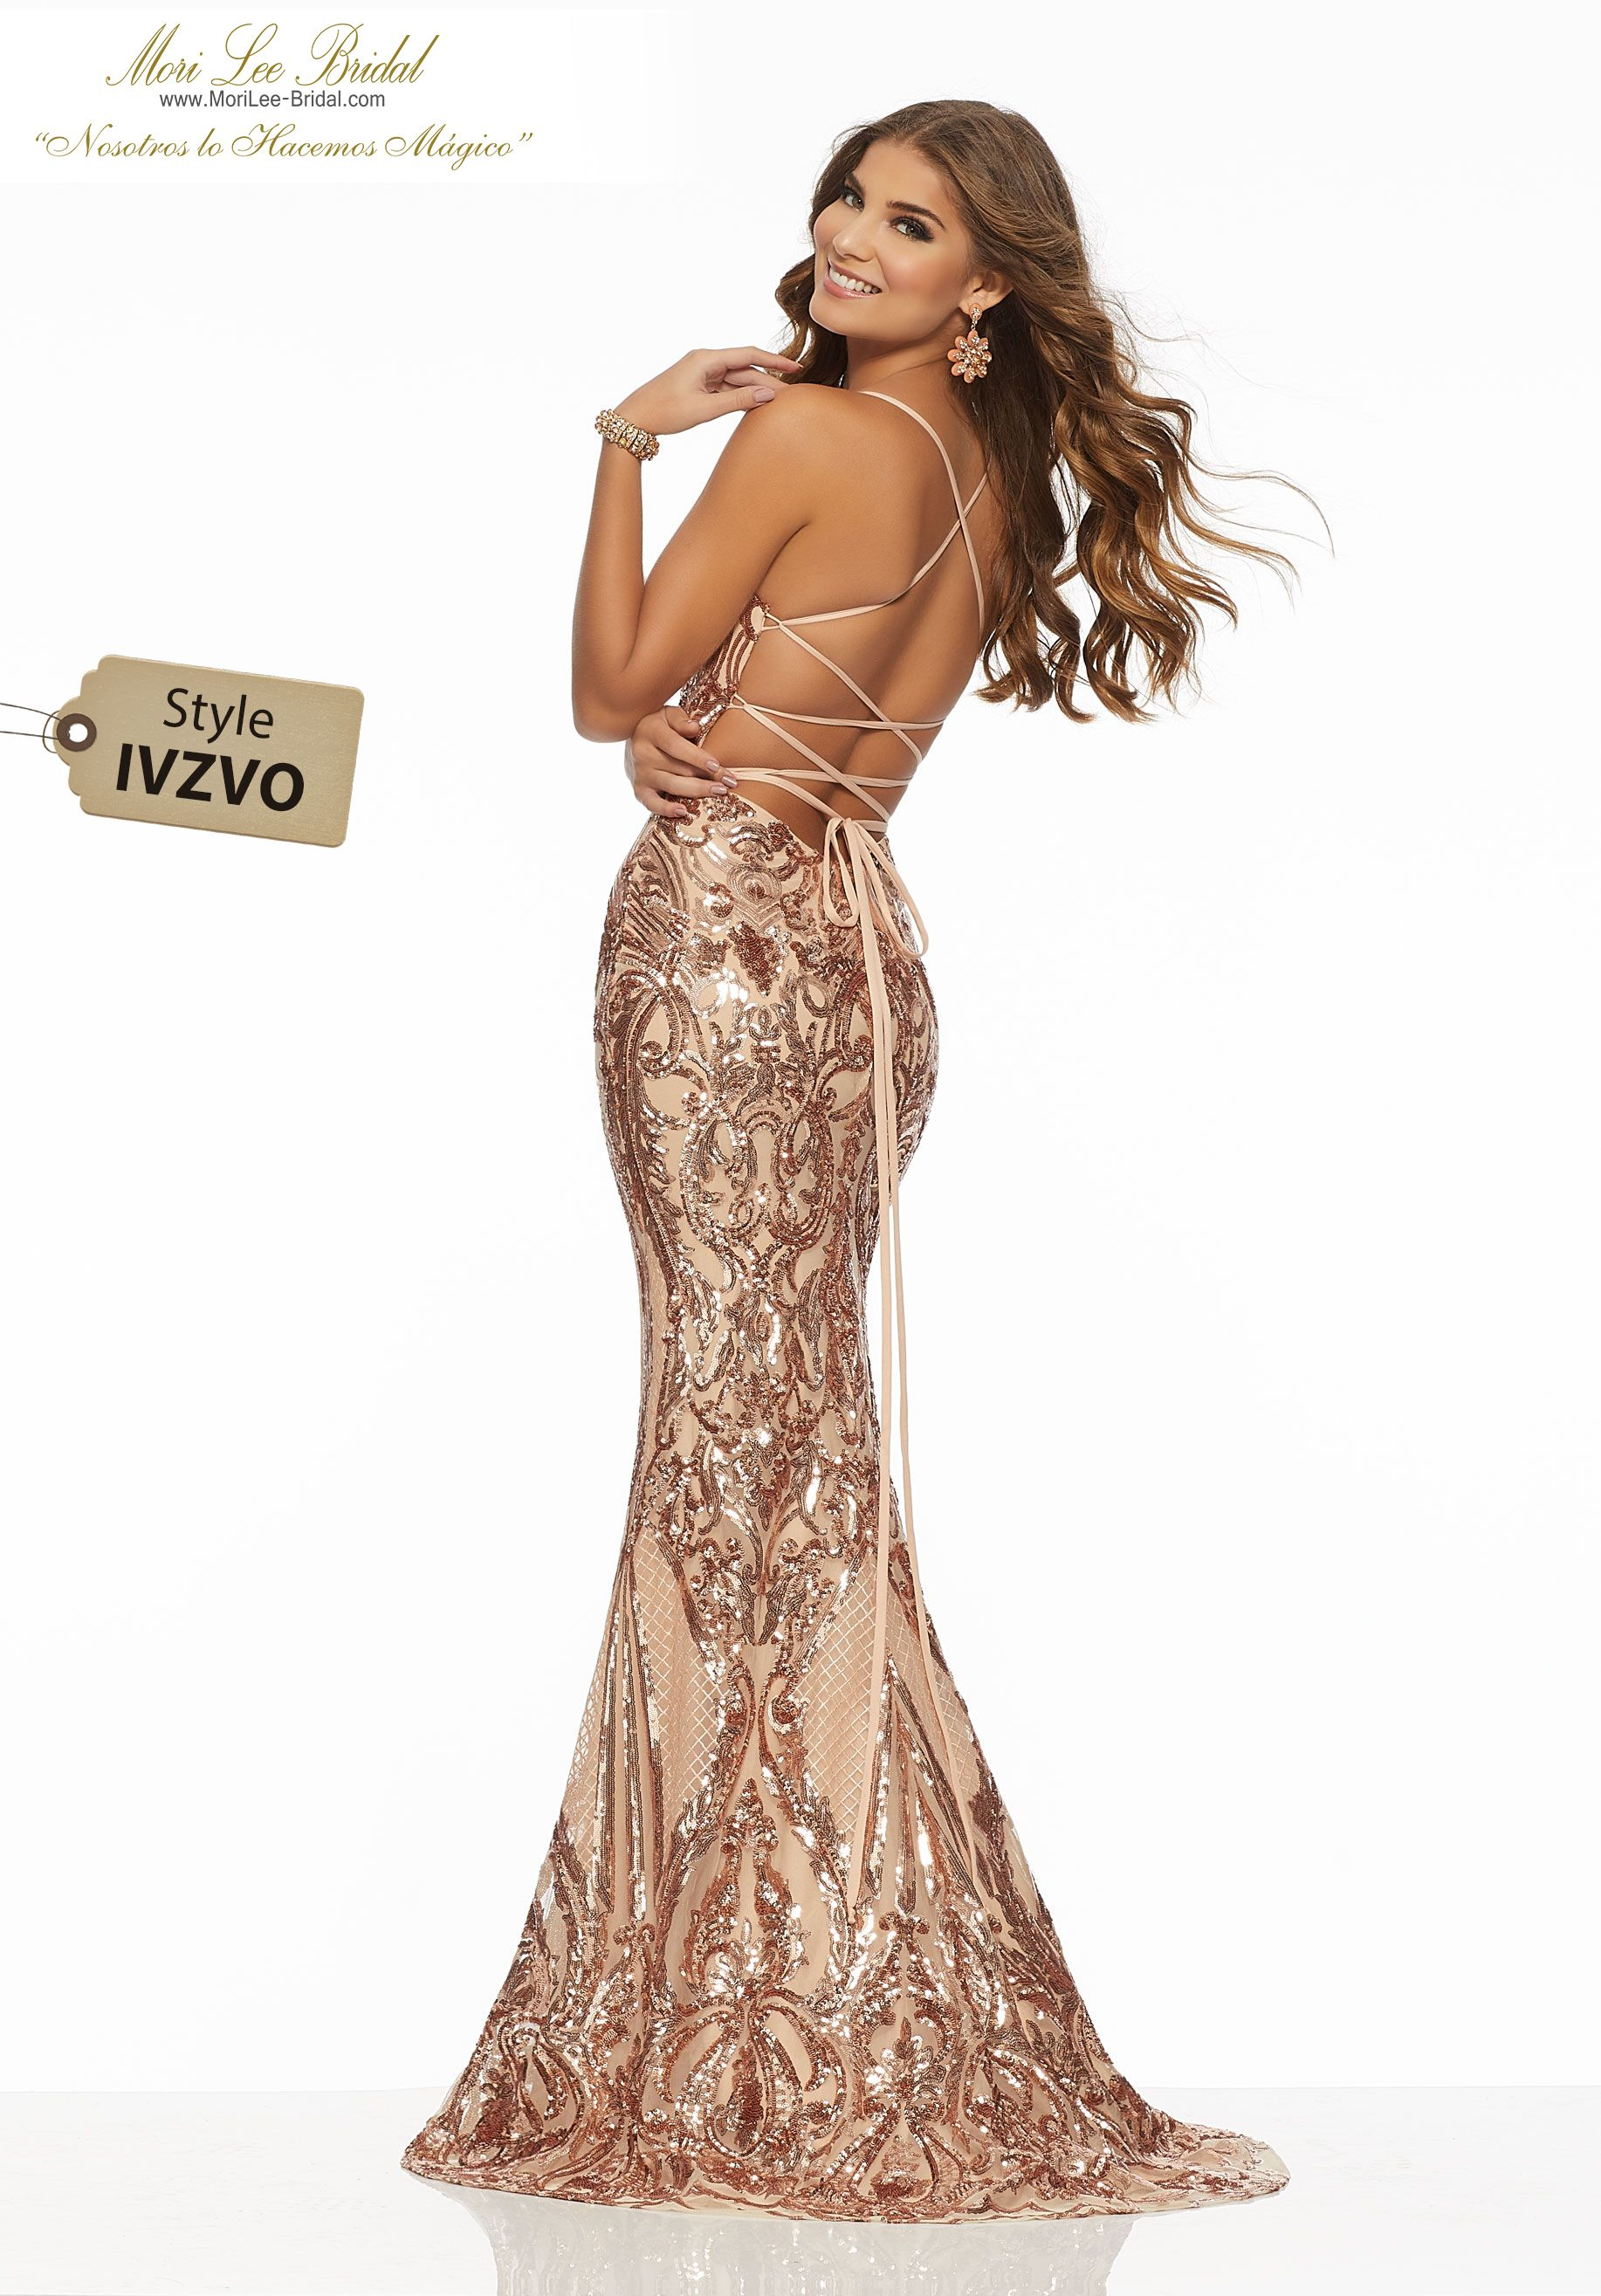 8fd9ad62ff3 Patterned Sequin on Net Form Fitting Prom Dress Featuring Pattern Sequin on  Net and a Deep-V Neckline. A Strappy Lace-Up Back Completes the Look.